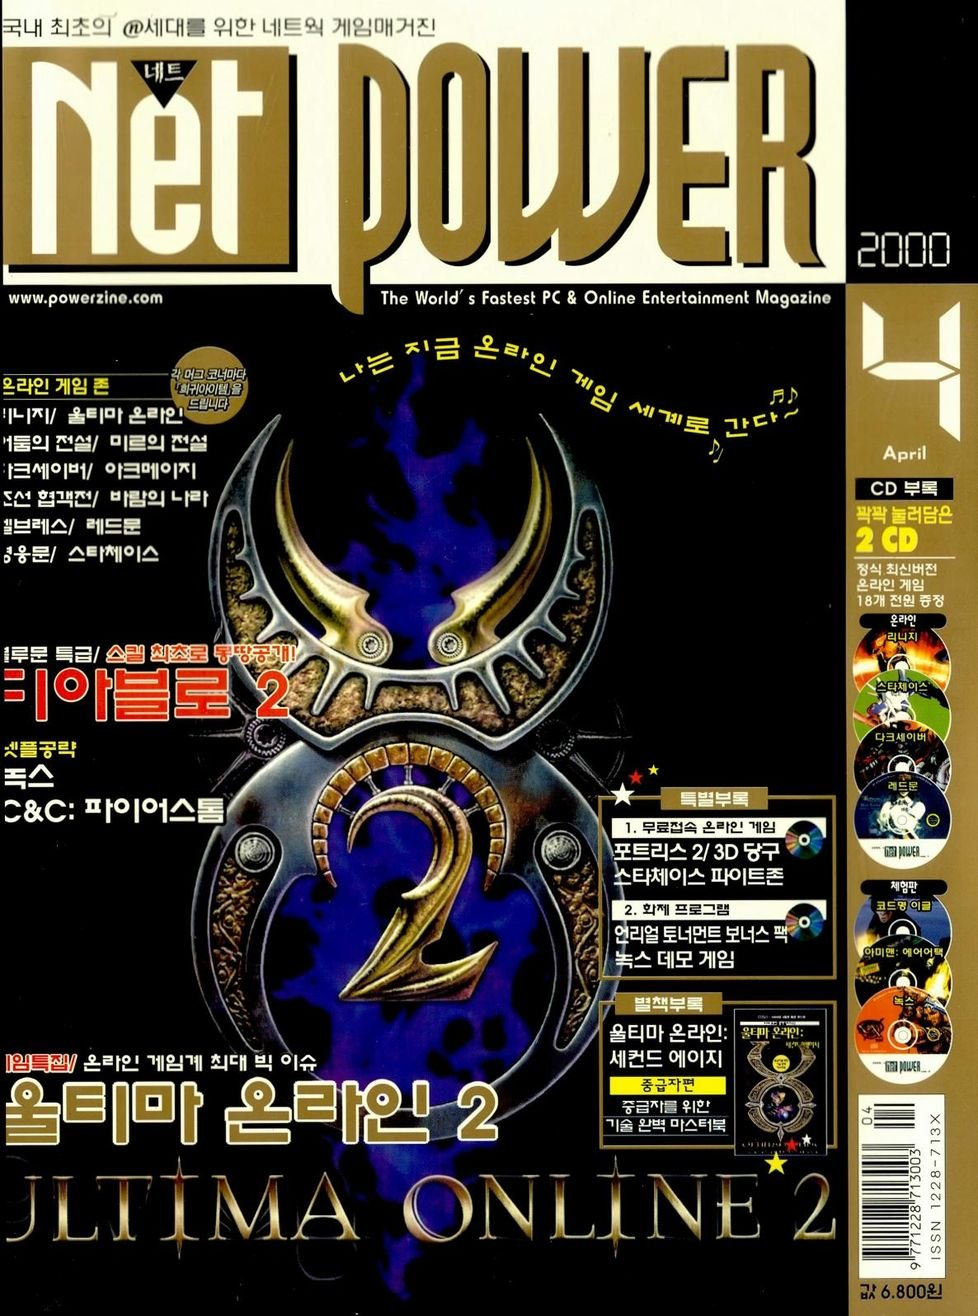 Net Power Issue 07 (April 2000)